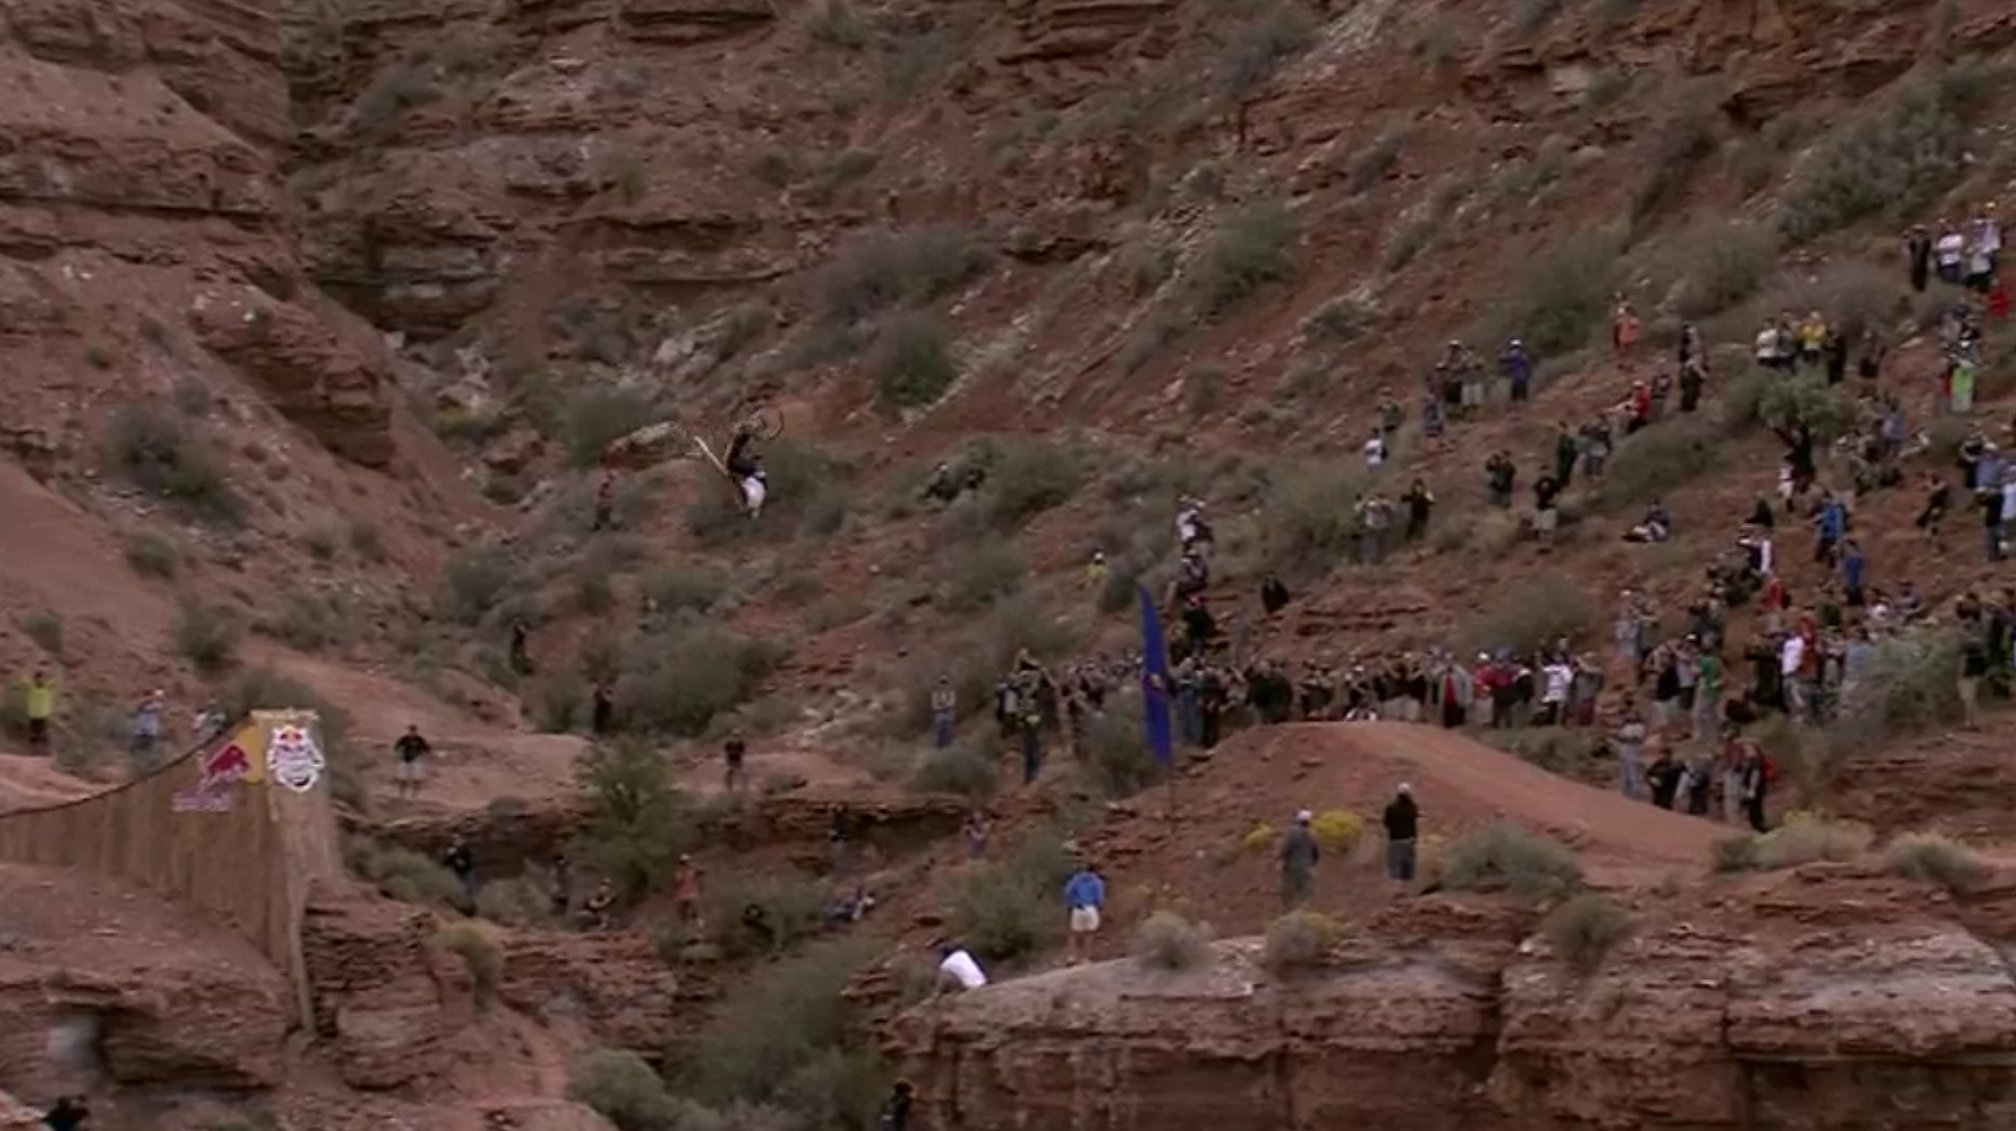 red_bull_rampage_2013_kelly_mcgarry_backflip_canyon_gap